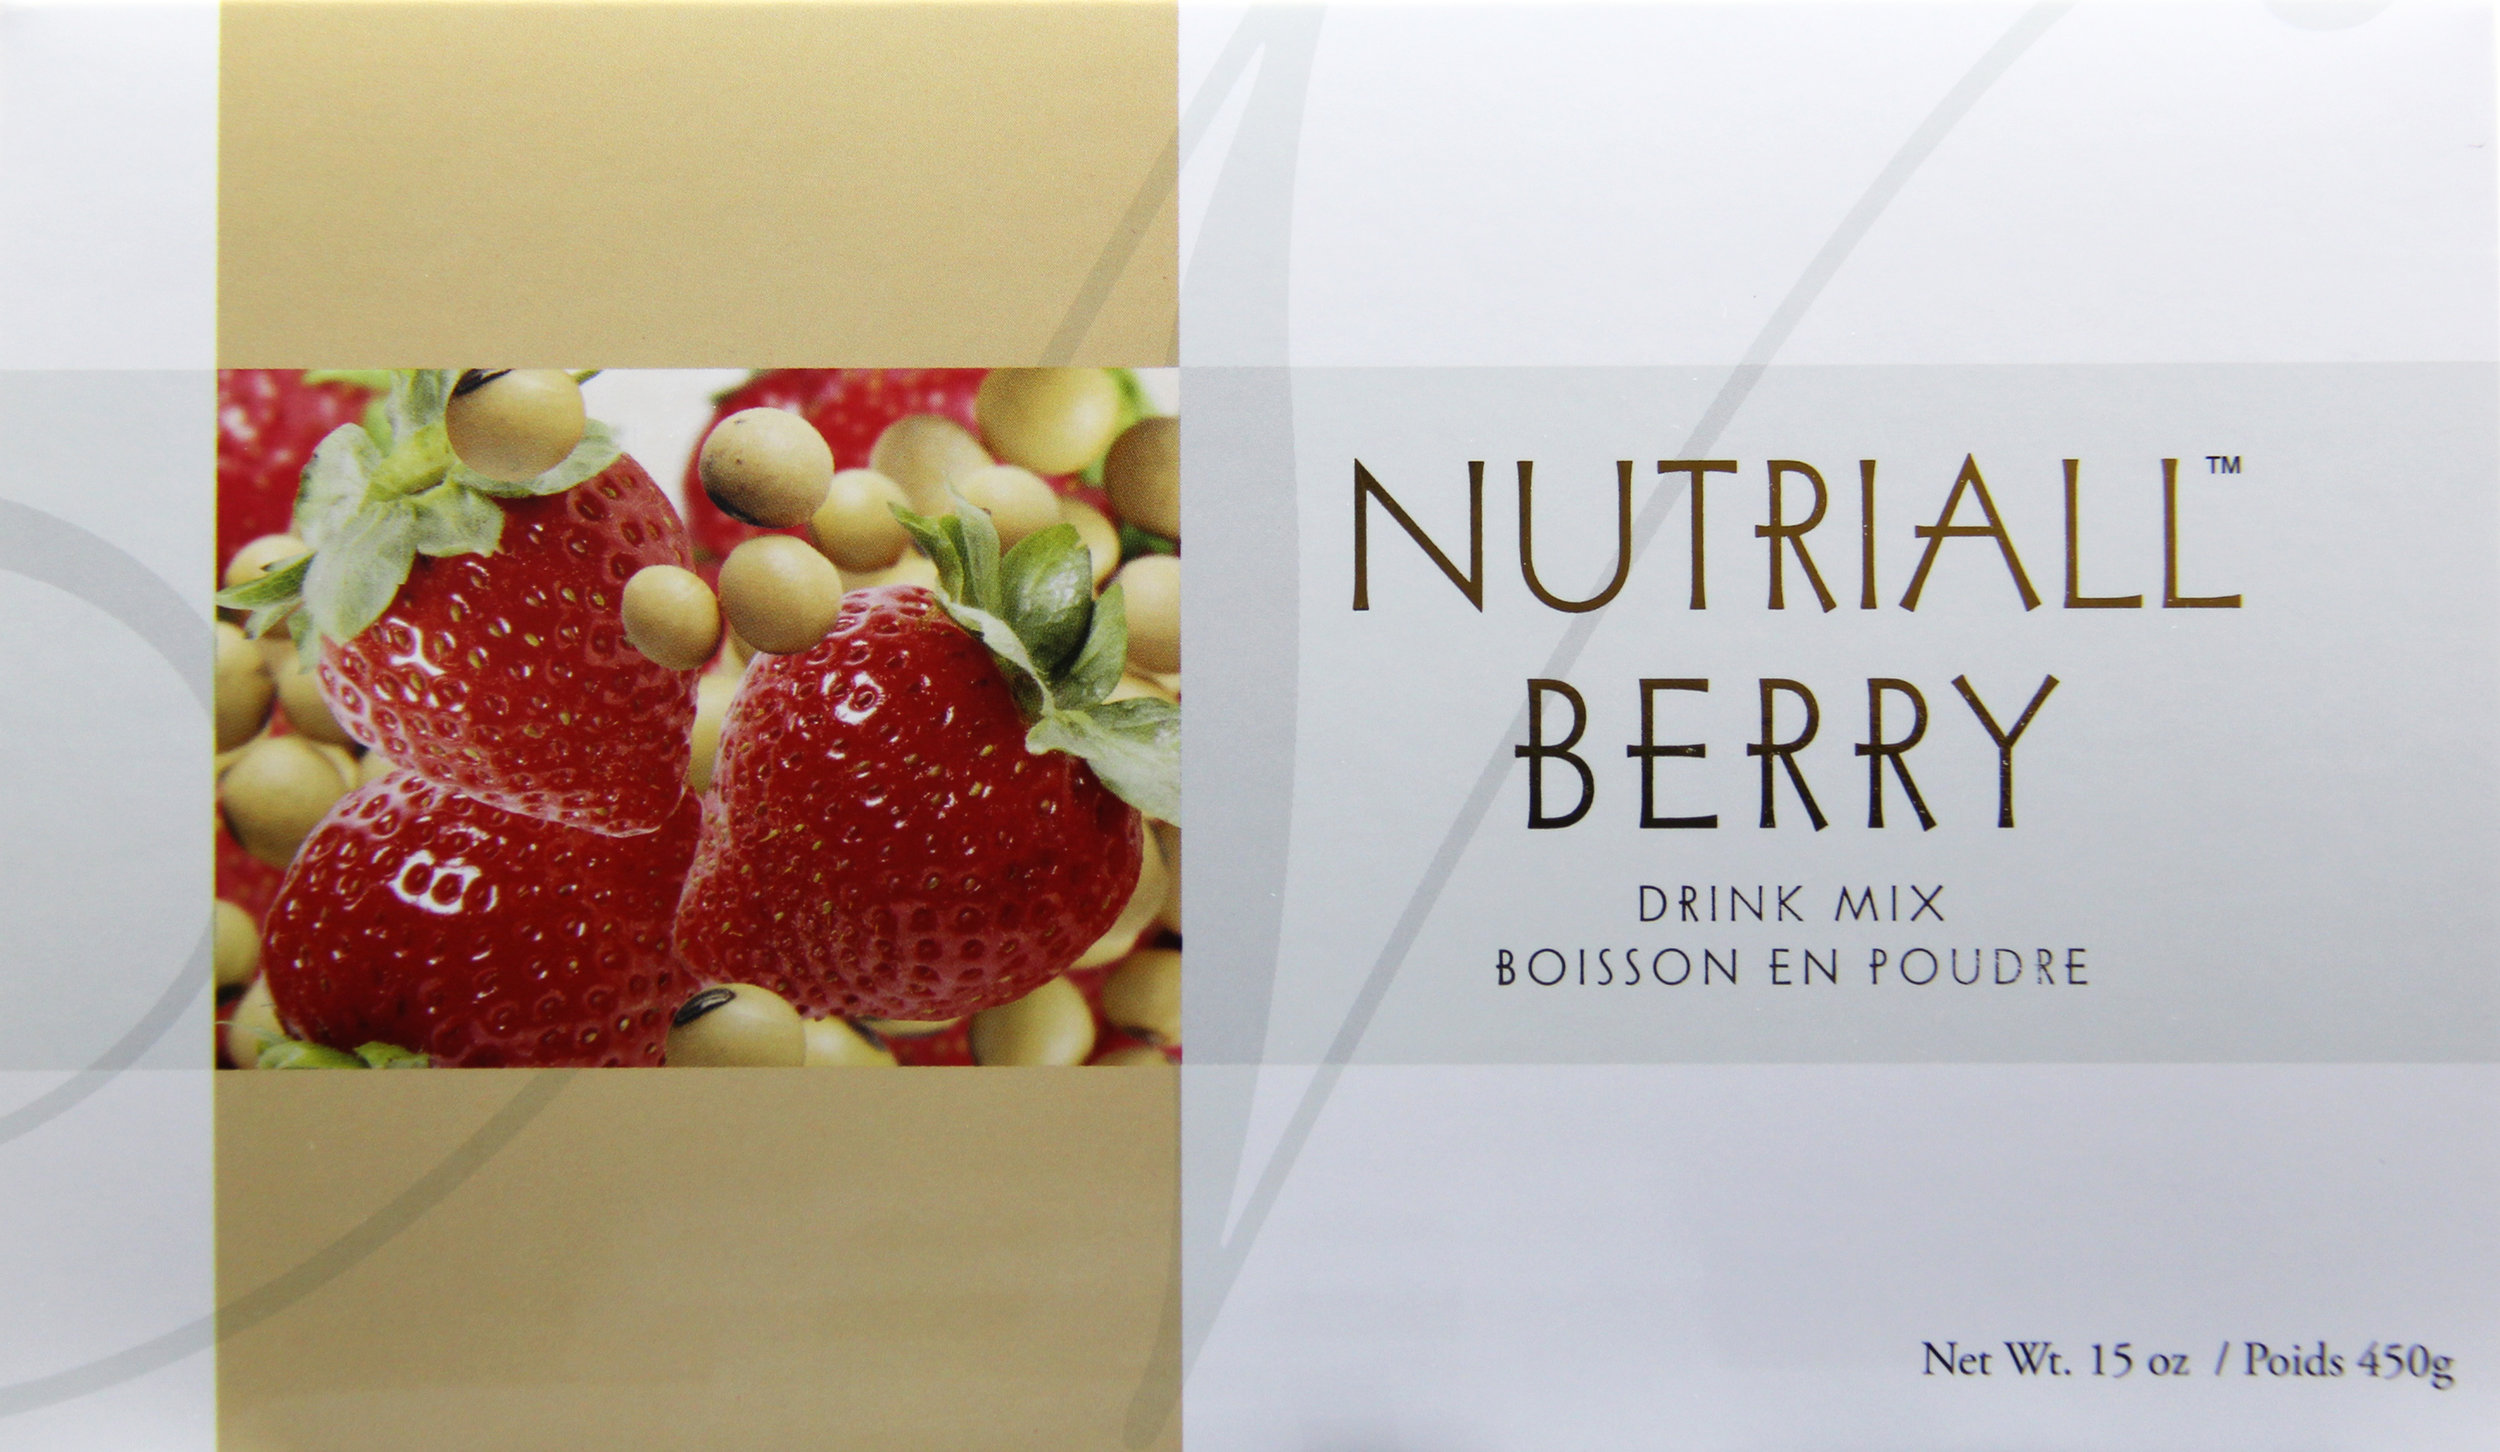 "nutriall berry - A good source of plant protein. ""Diets low in saturated fat and cholesterol that include 25g of soy protein a day may reduce the risk of heart disease (21 CFR 101.82).""One packet of Nutriall Original provides 8g of non-GMO soy protein. Two packets of Nutriall Berry provides 10g of non-GMO soy protein.Featured Ingredients: Non-GMO Soy Protein, Strawberry, Sacred Lotus Leaf"